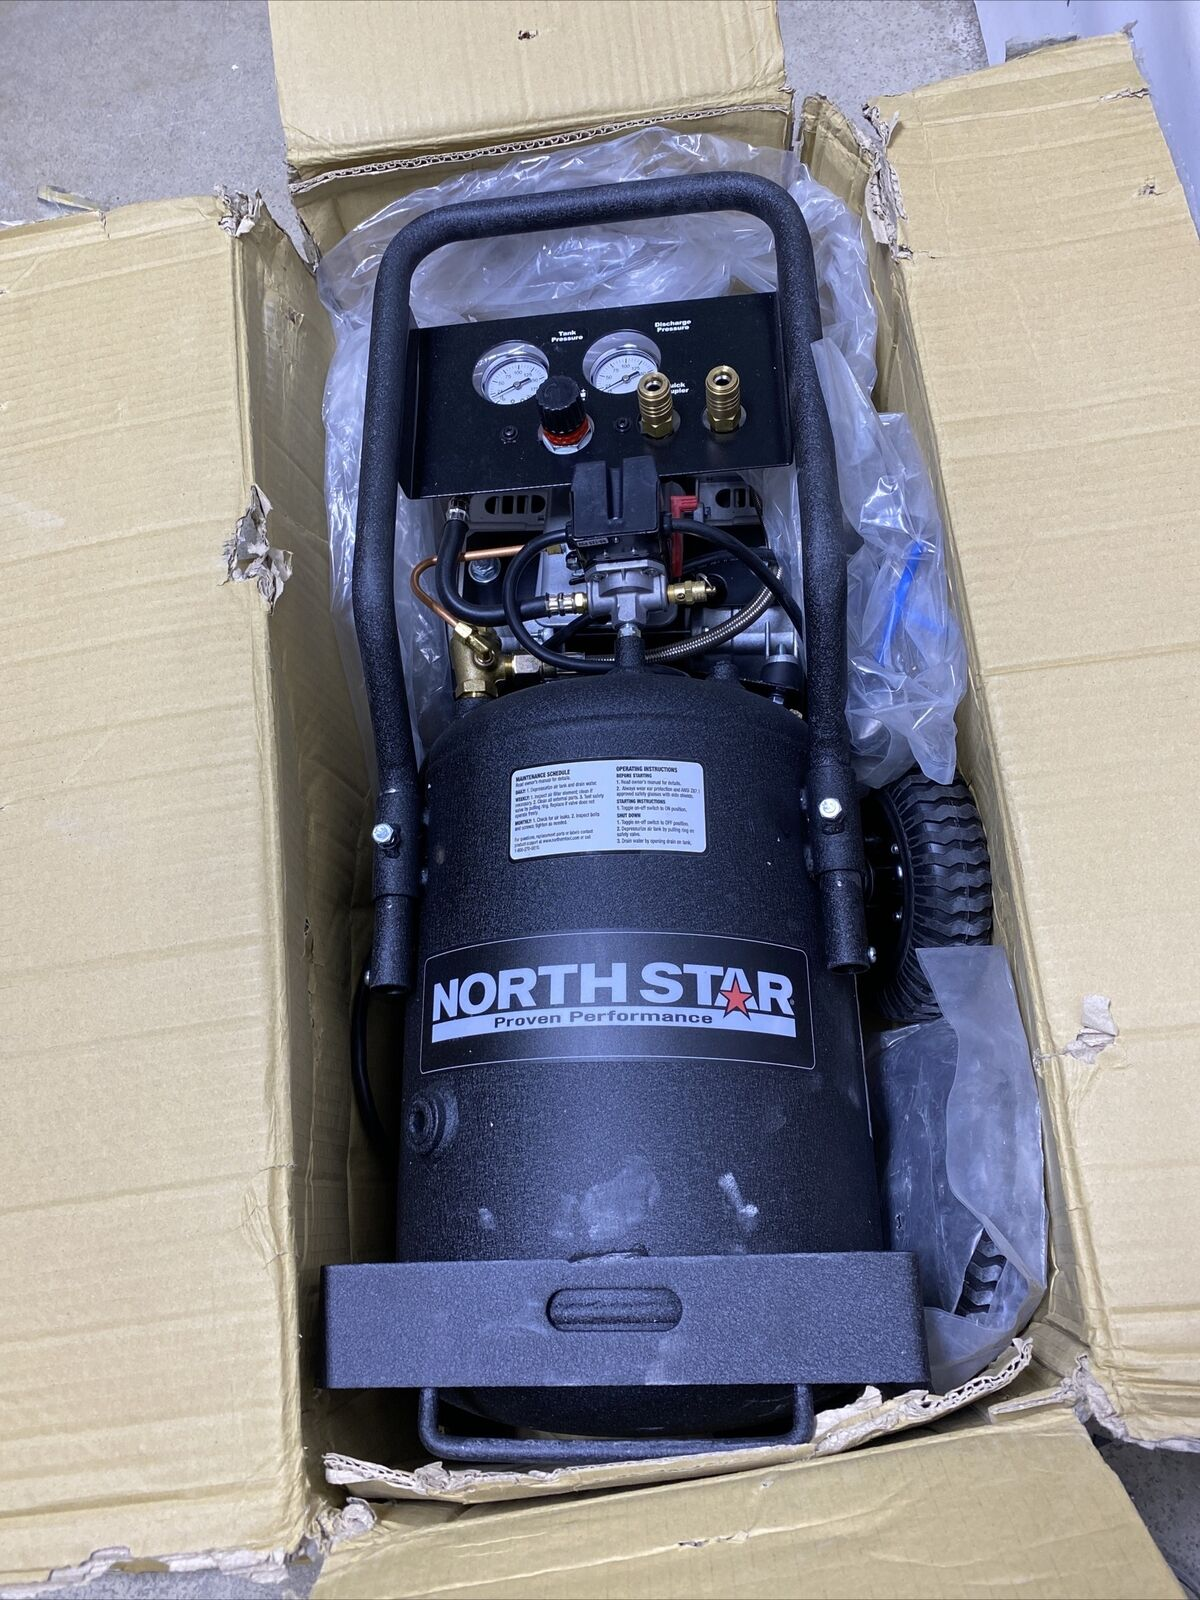 NorthStar Portable Electric Air Compressor 1.5 HP, 8-Gallon Vertical Tank Y-22. Buy it now for 279.99